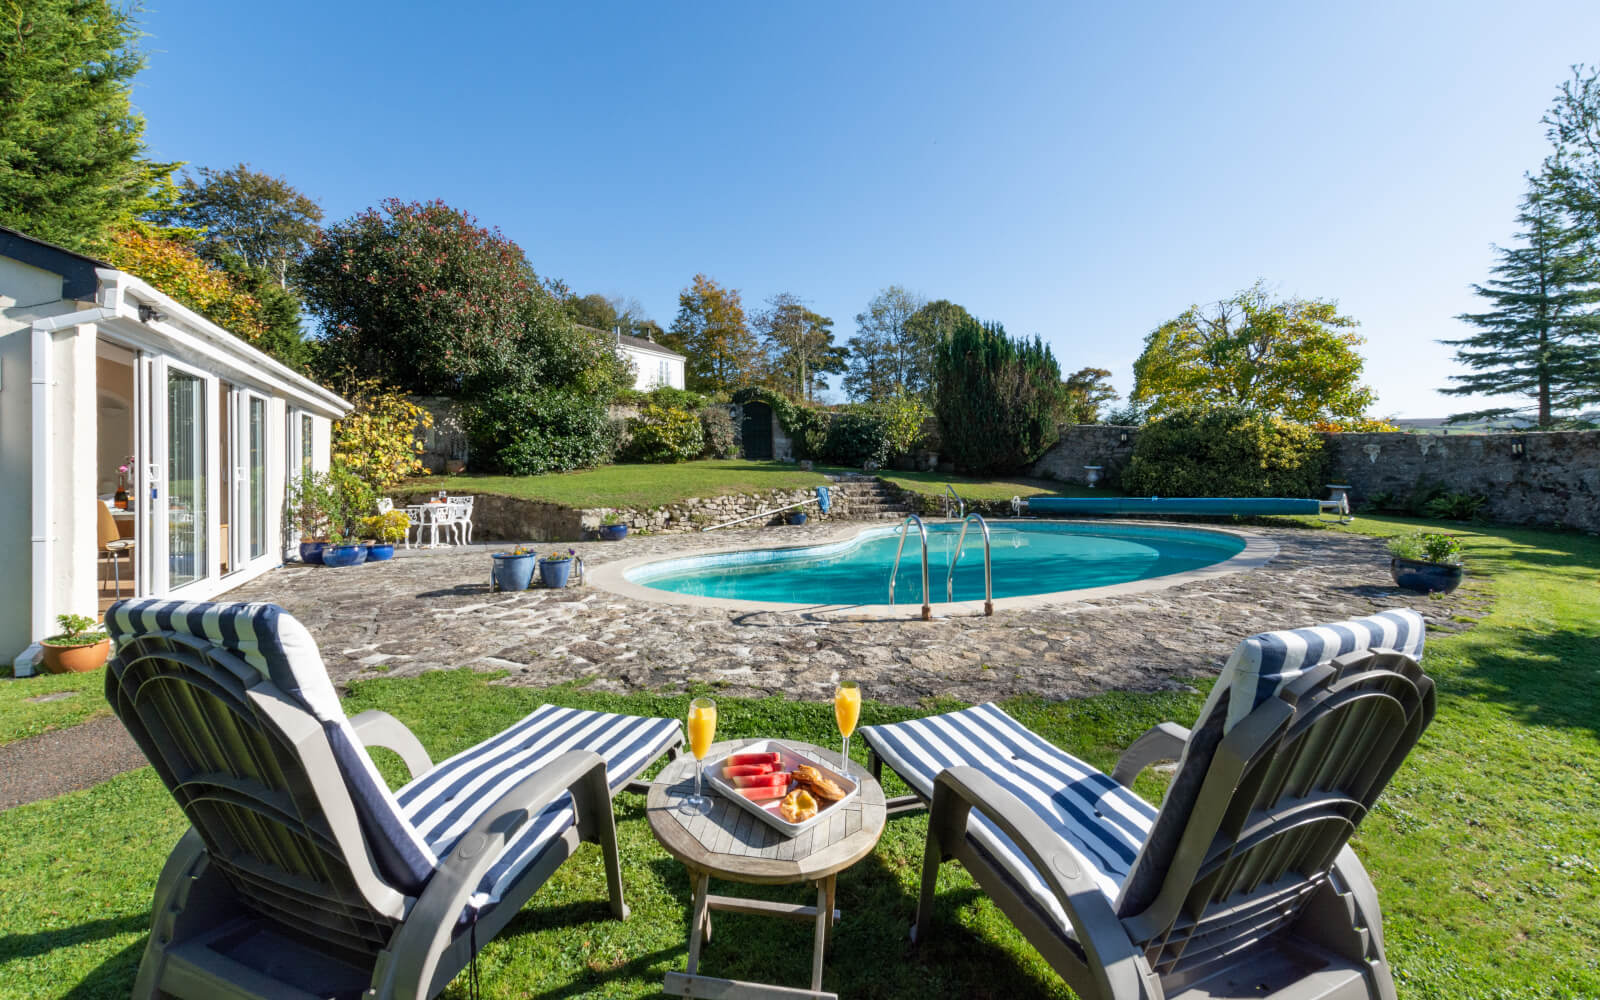 Holiday Cottages With Swimming Pools In Wooler To Rent - Save up to 60%